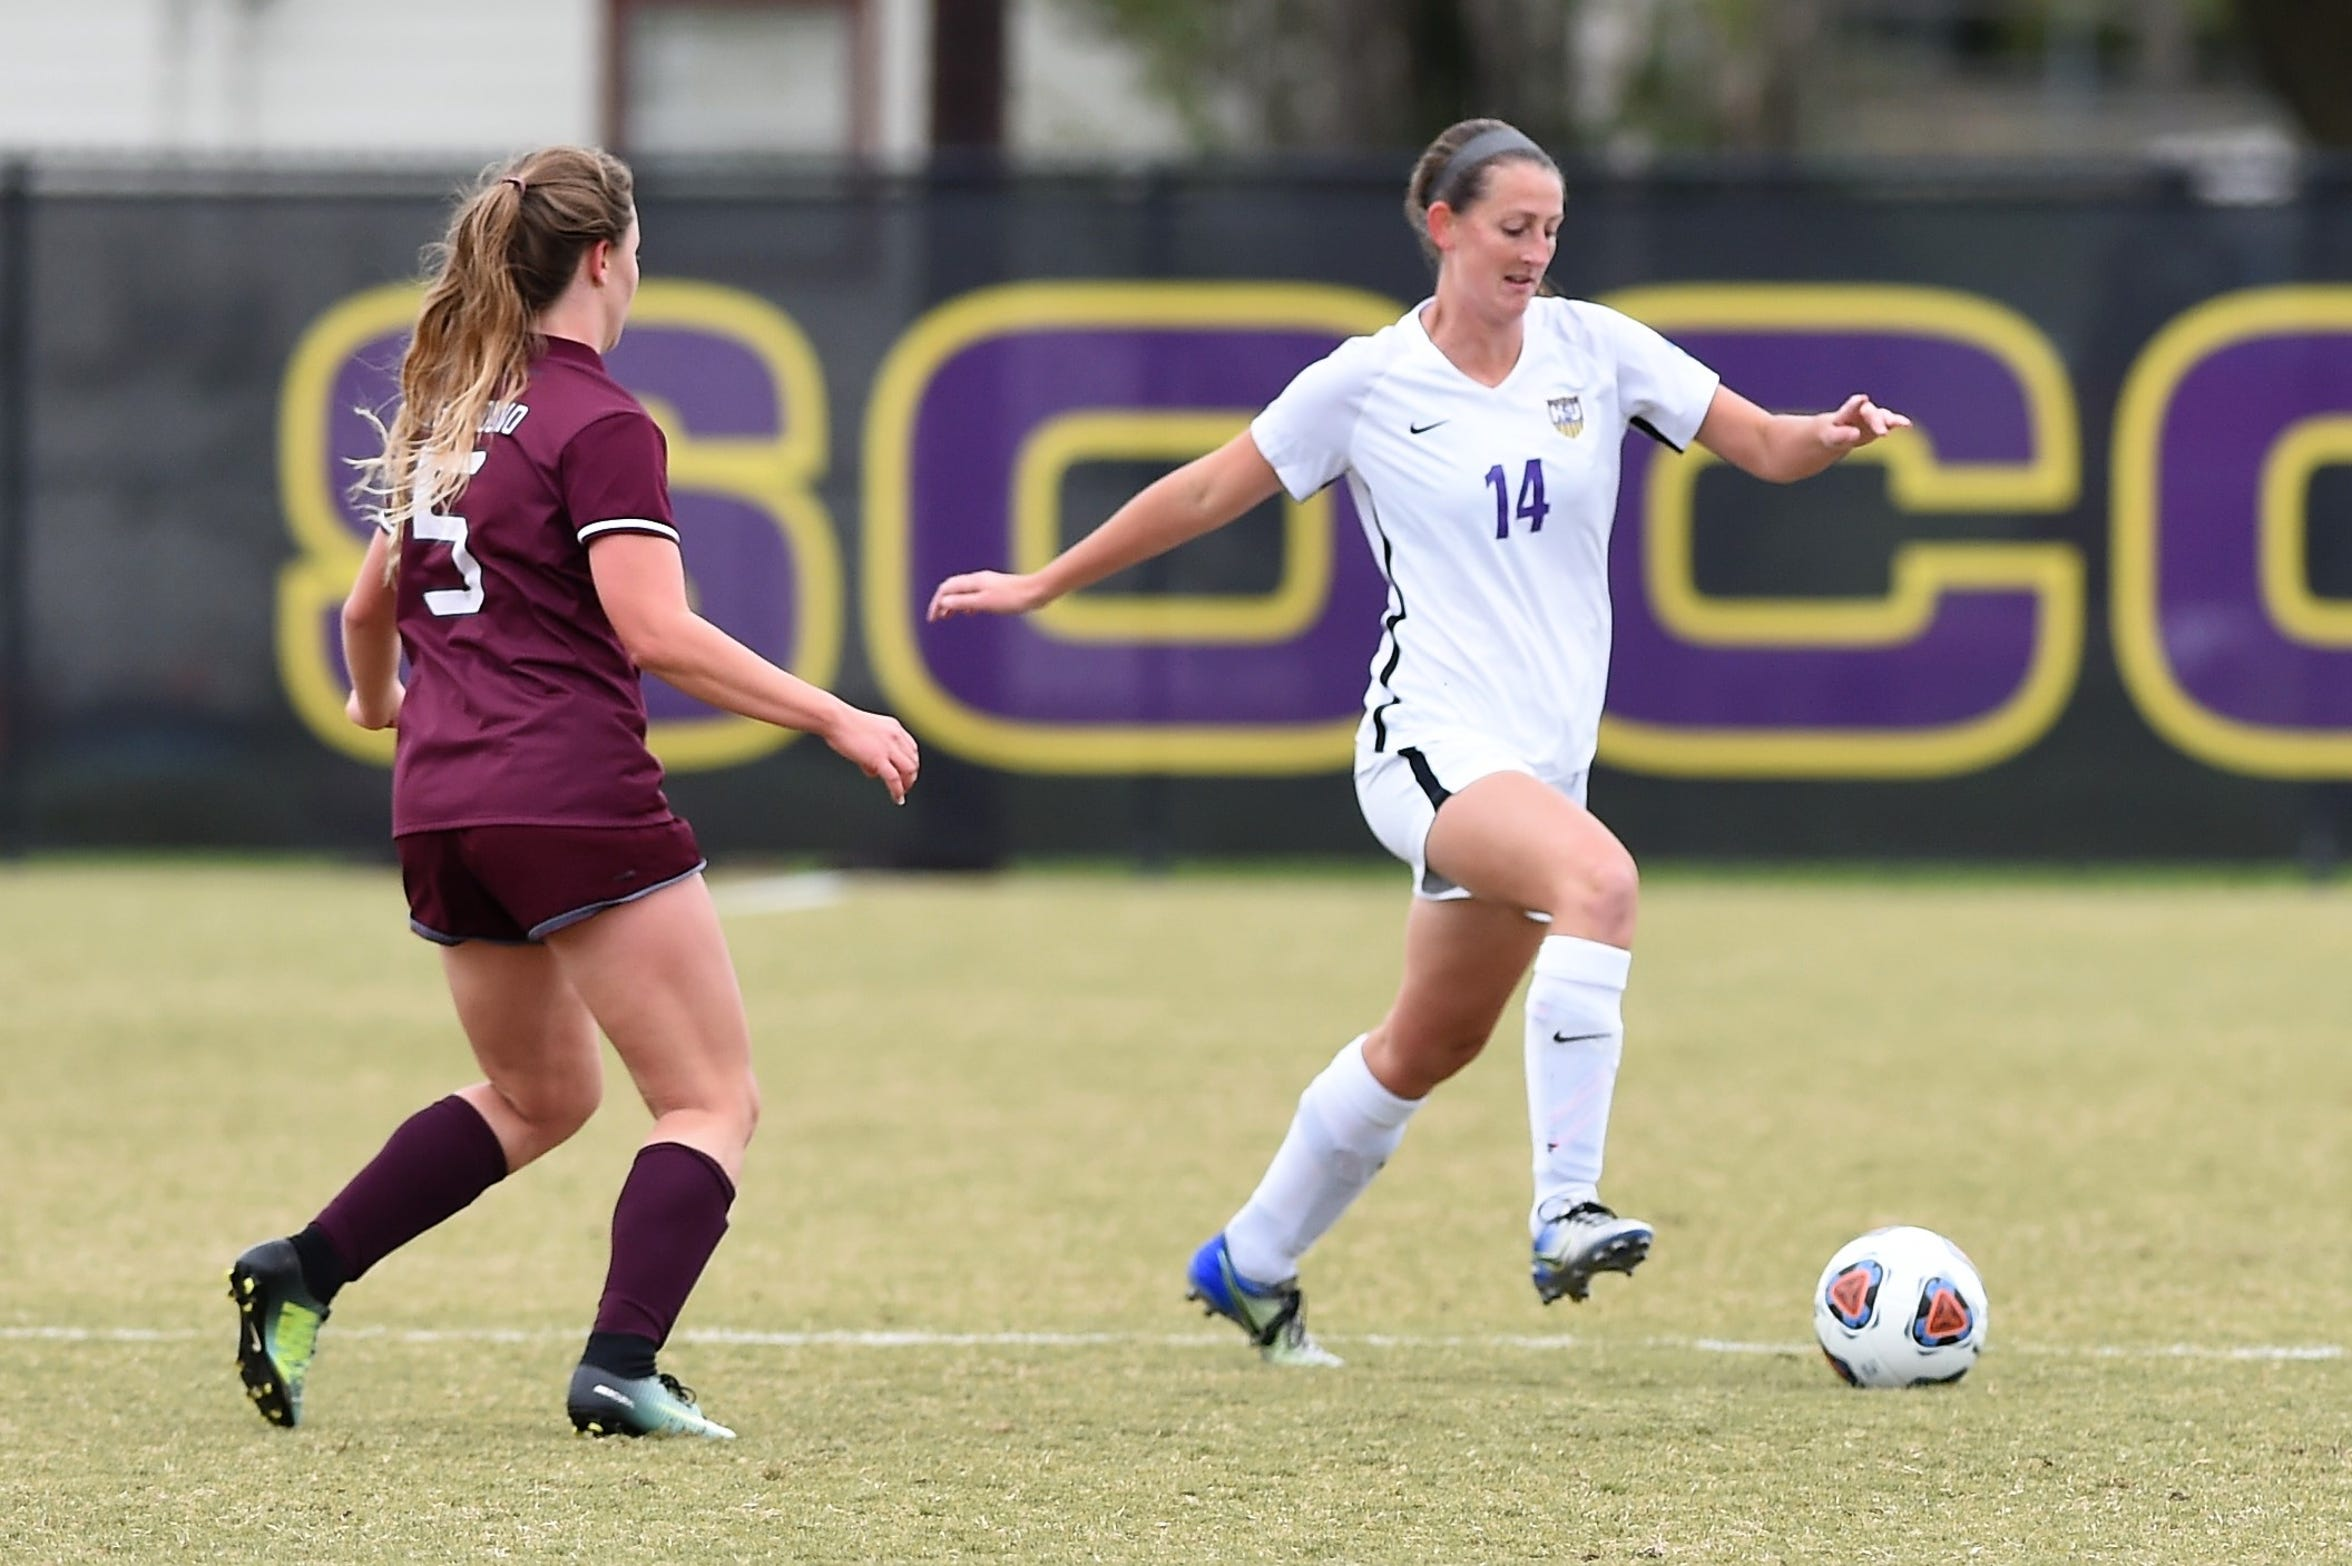 Hardin-Simmons defender Sarah Krisa (14) carries the ball past Puget Sound's Lura Morton (5) during the NCAA tournament's first round. Krisa's move to the back line was a key to stabilizing the Cowgirls' defense this season.